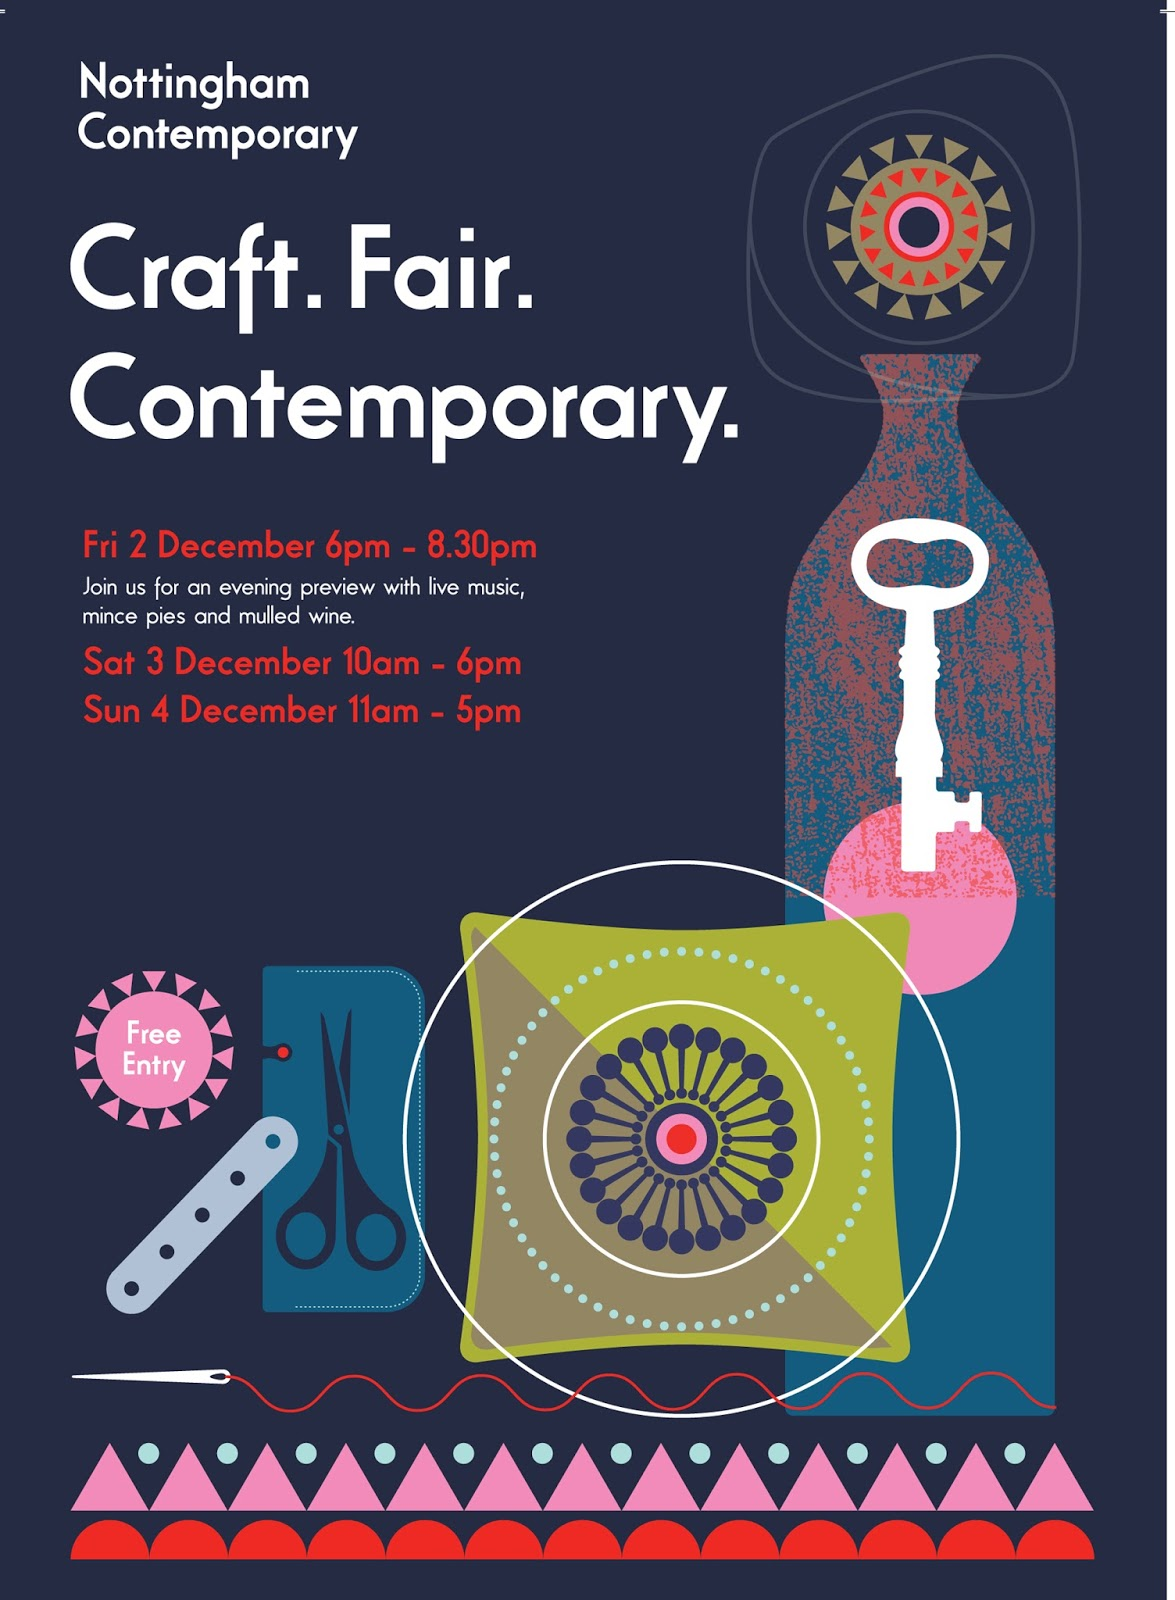 Nottingham Contemporary Craft Fair